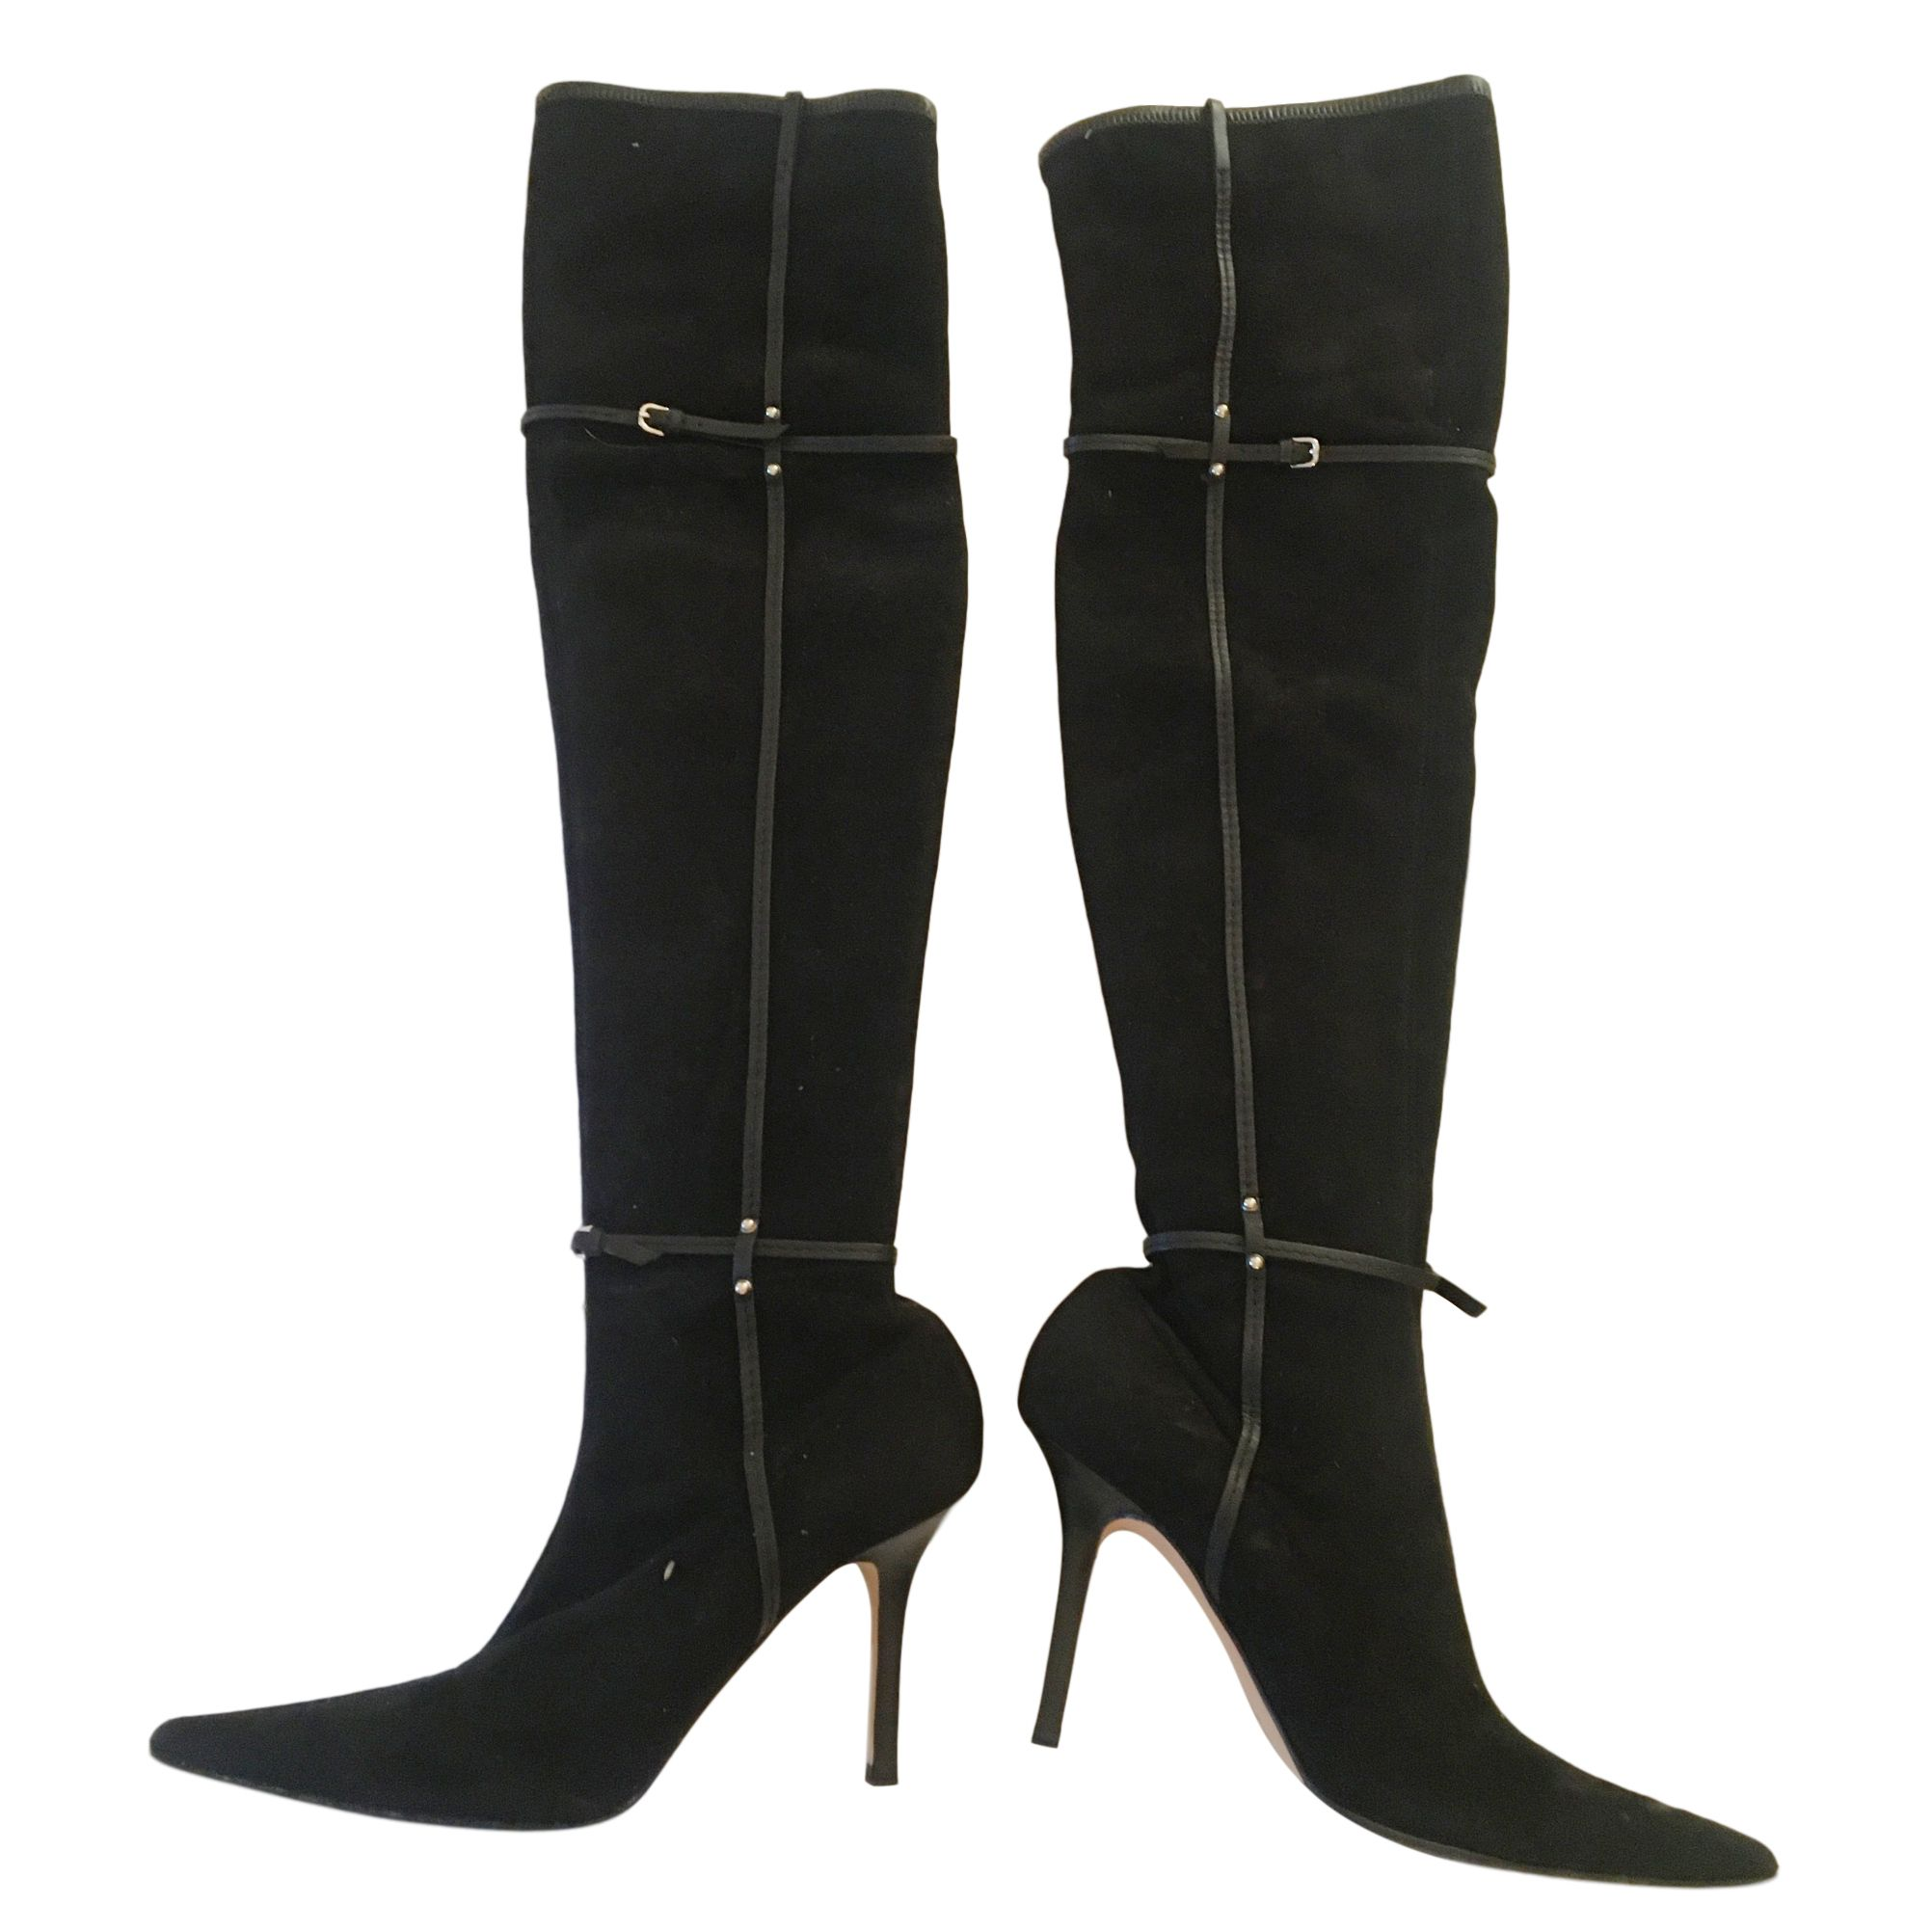 Gucci Black Stretch Suede Buckle Detail Boots